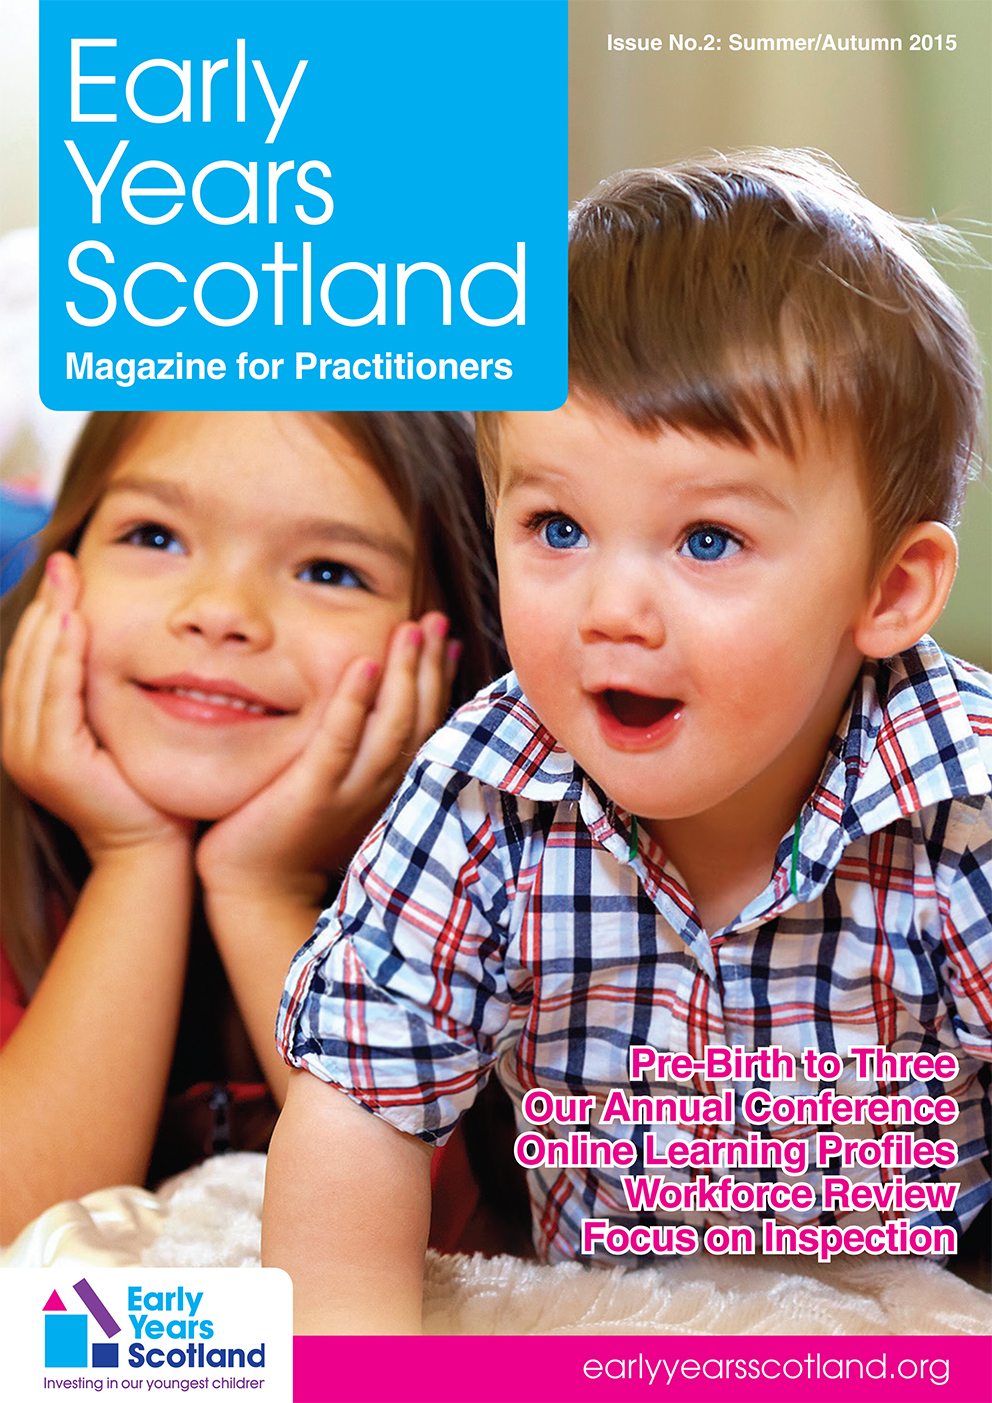 Latest issue of magazine for practitioners out now